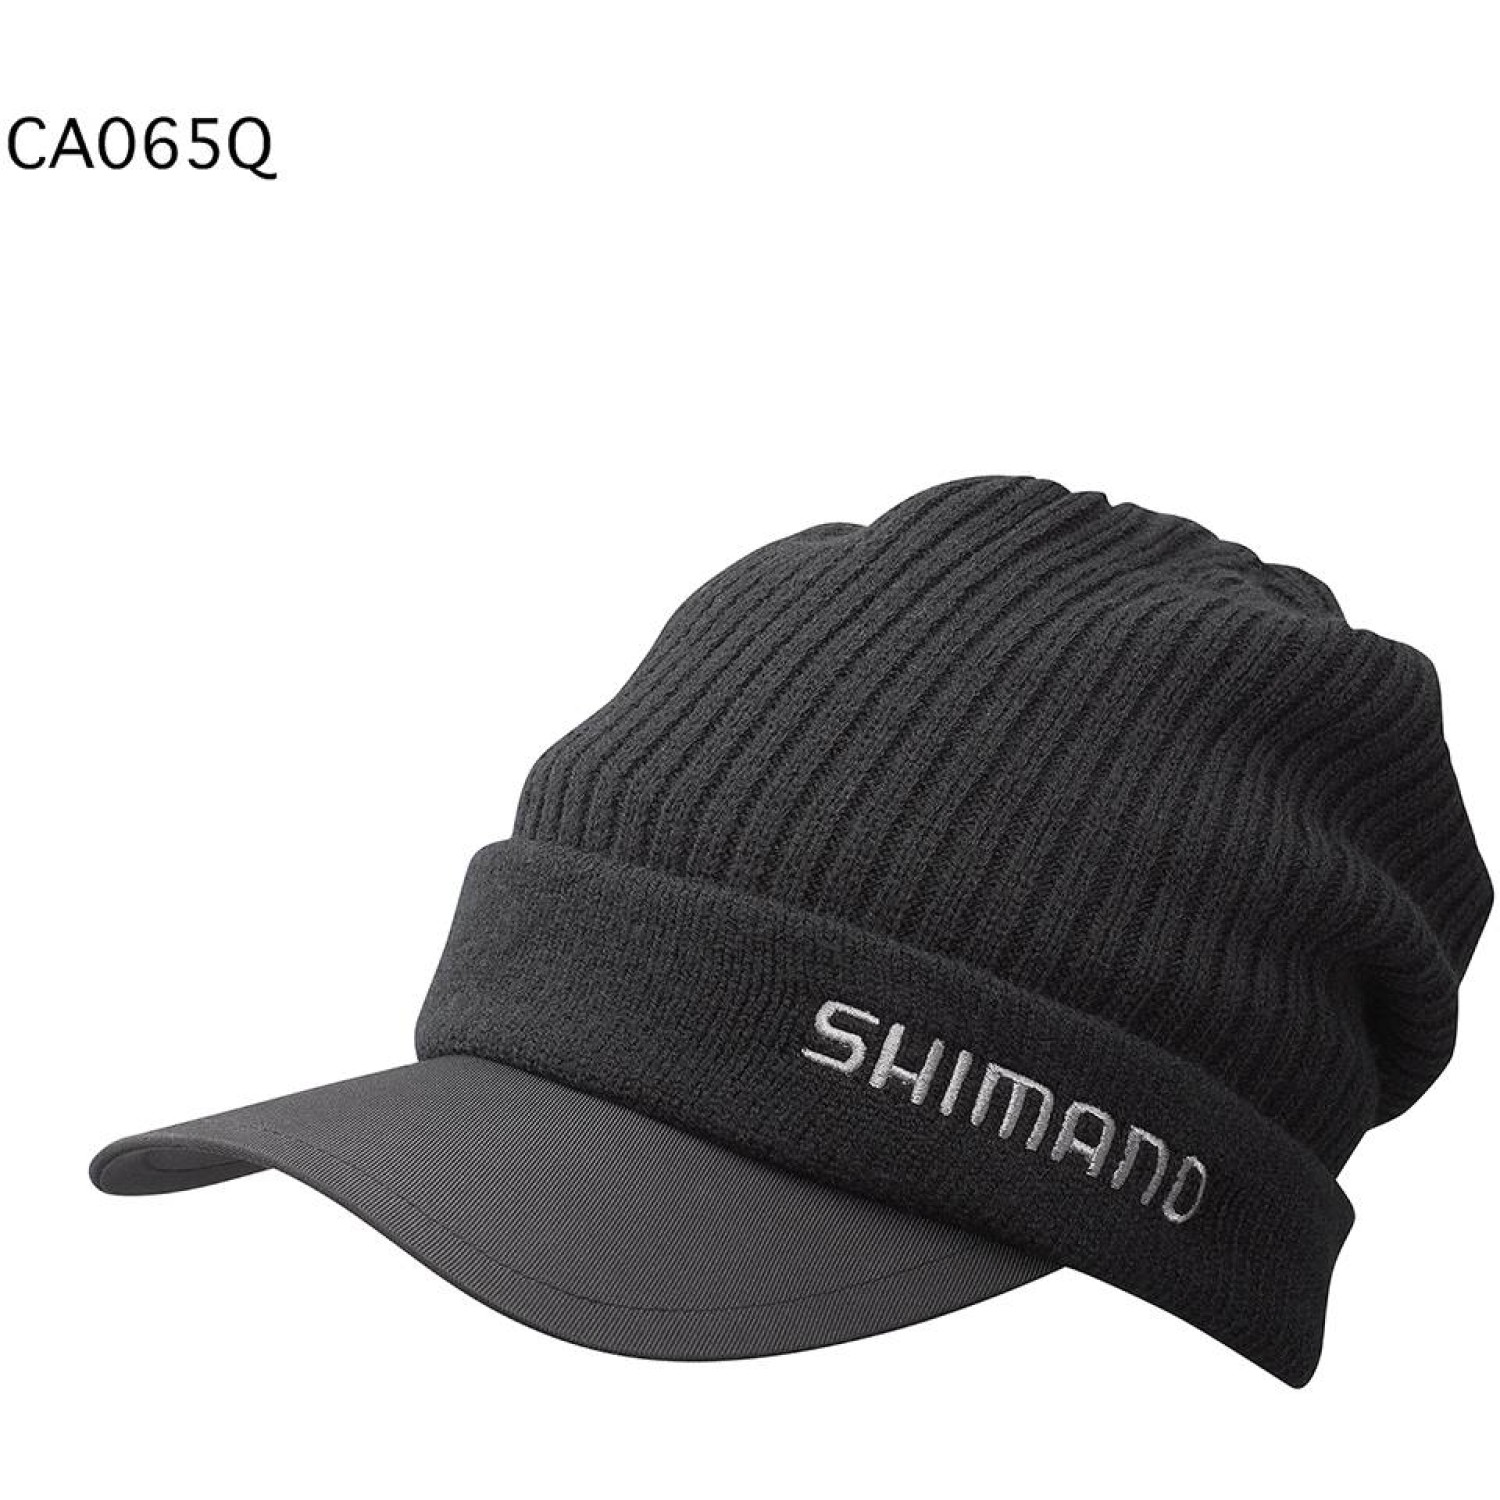 Shimano Breath Hyper Knit Cap (With Brim)